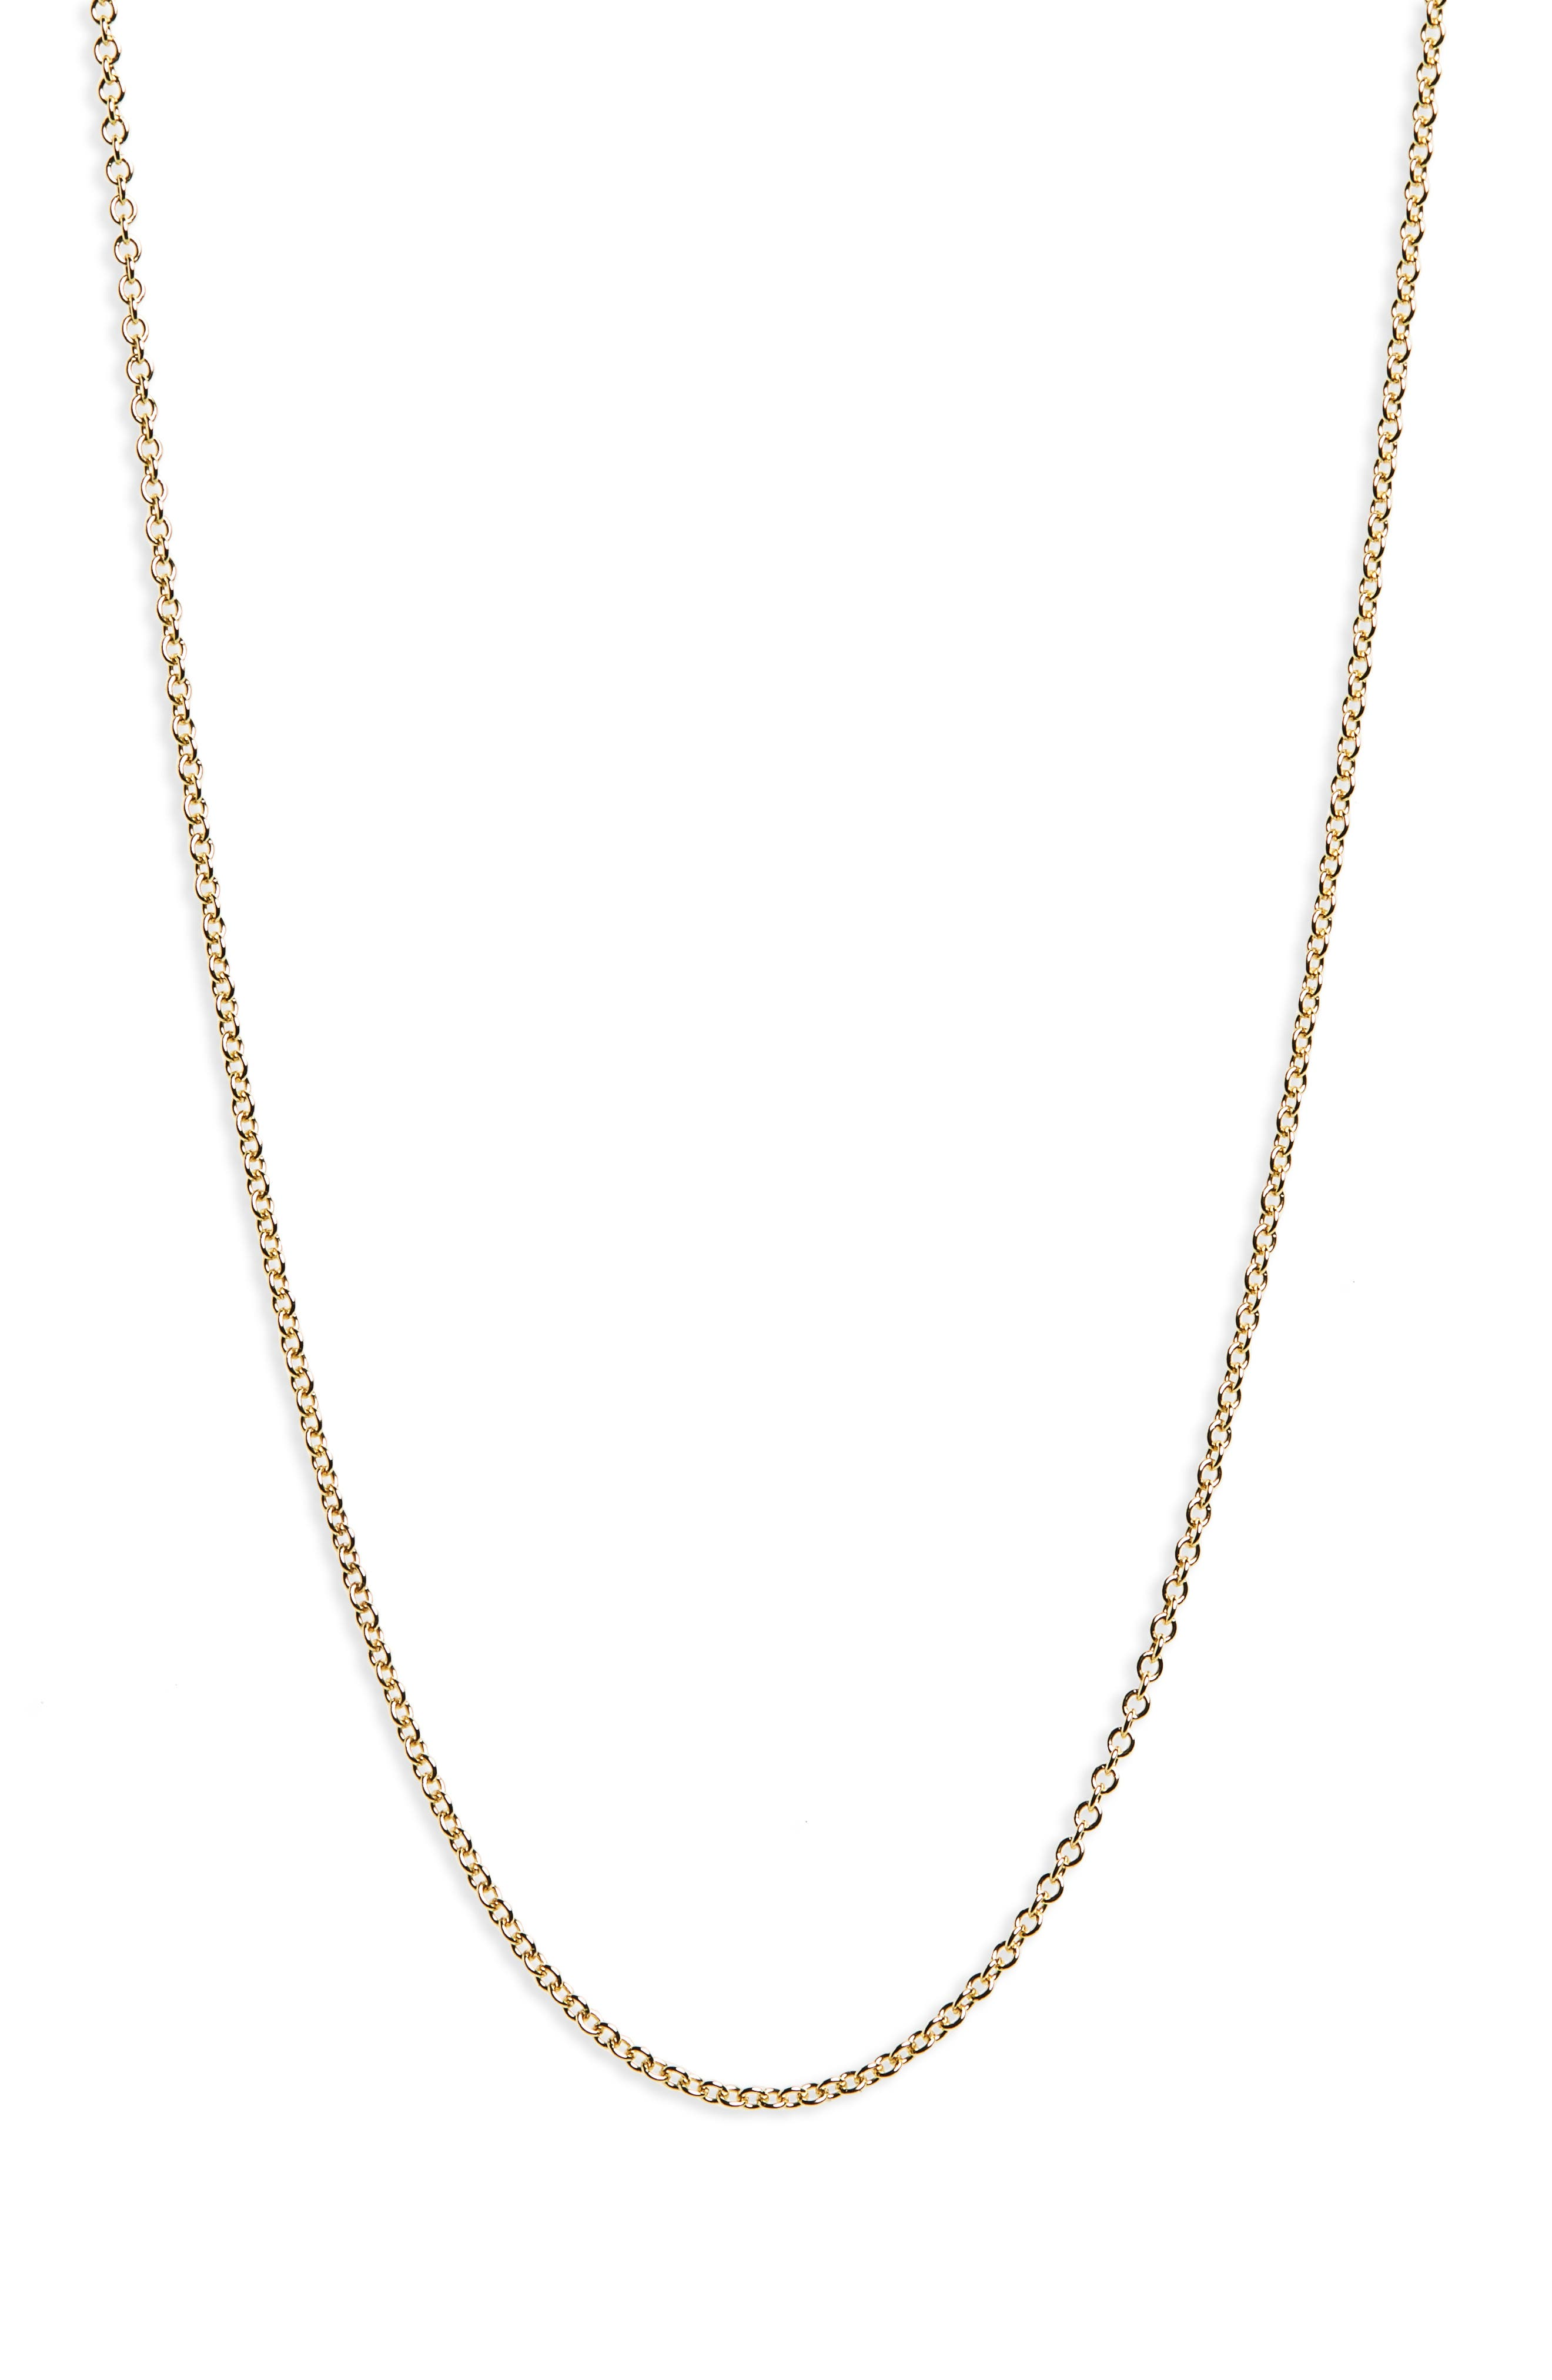 14K Gold Rolo Chain Necklace,                         Main,                         color, Yellow Gold